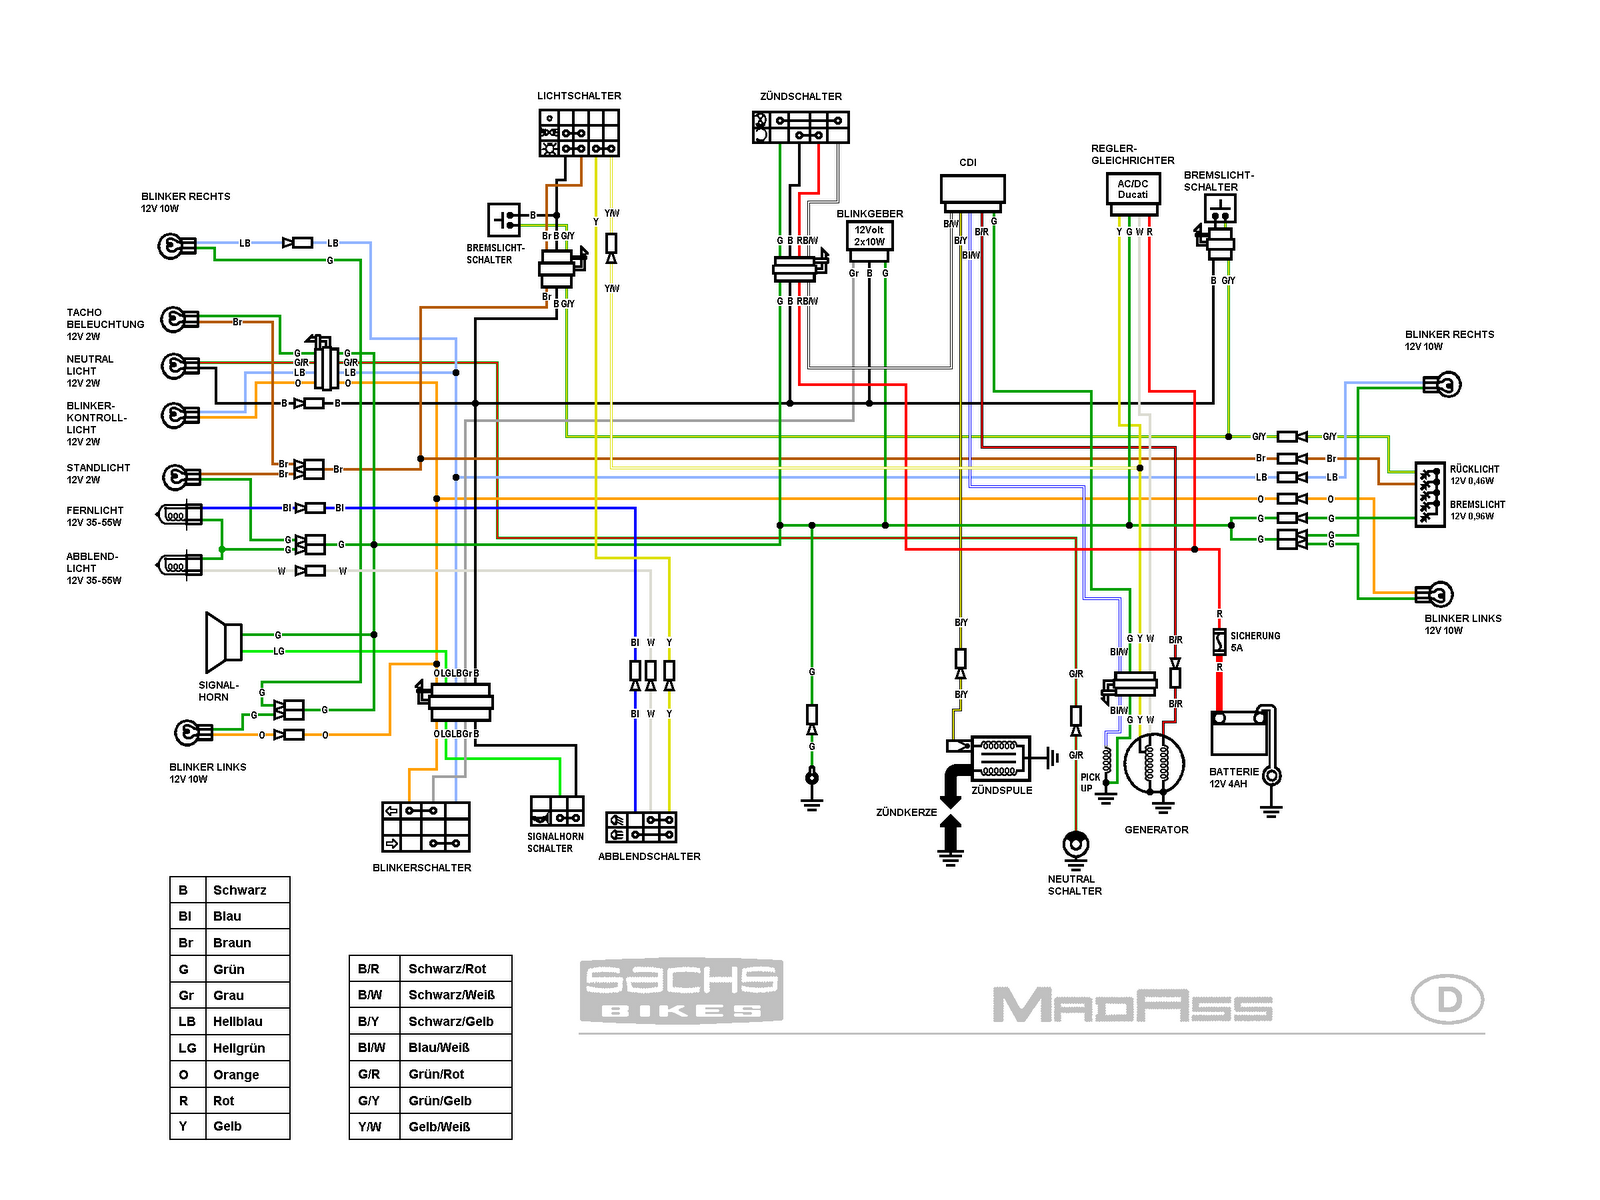 honda wiring diagram sachs madass wiring diagram techy at day blogger at noon wiring diagram